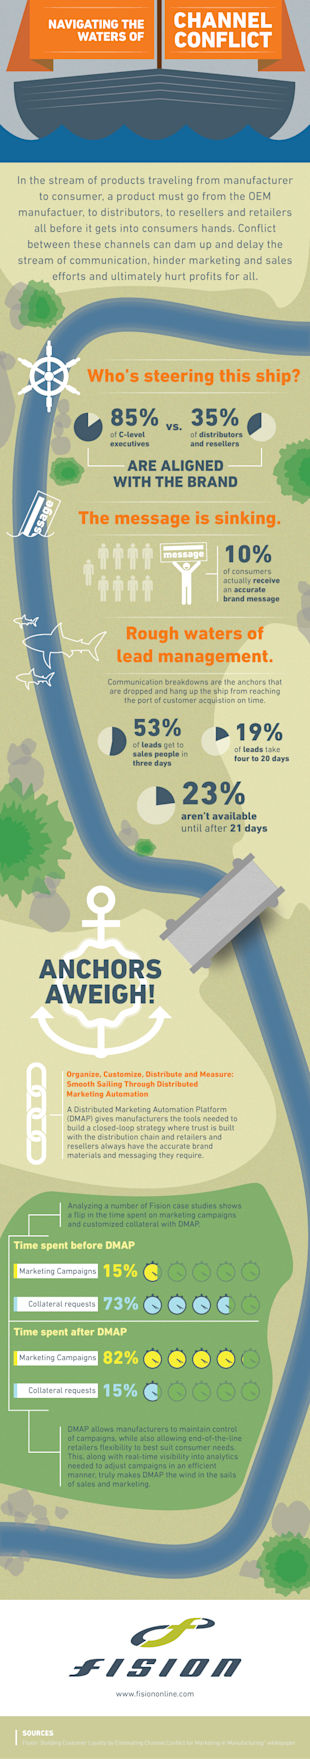 Manufacturing Infographic: Navigating the Waters of Channel Conflict  image Fision ChannelConflict 2 72